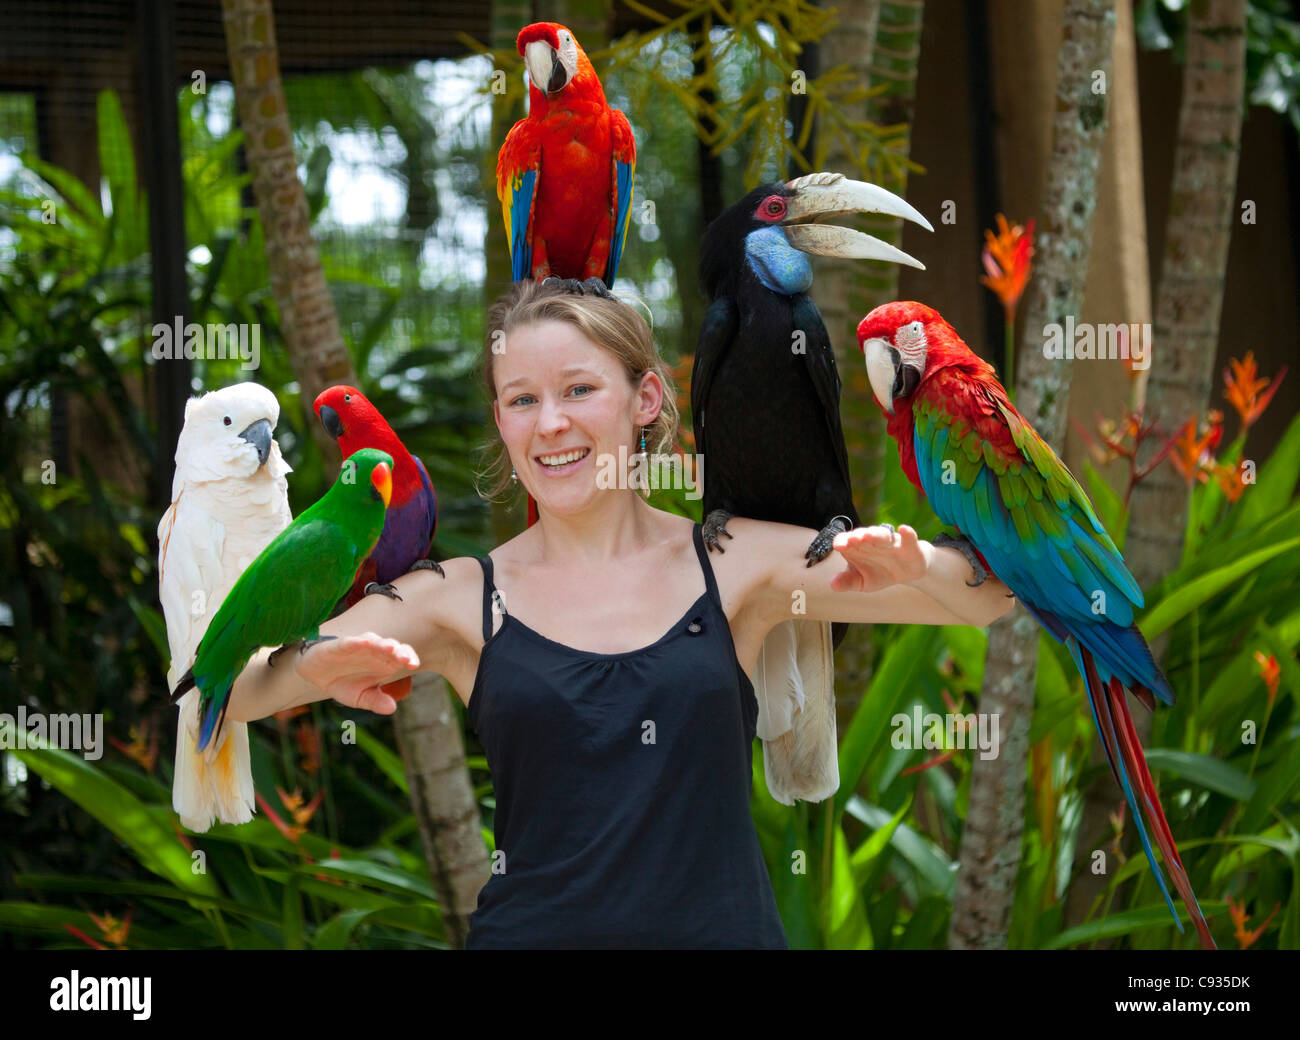 Bali Ubud A Tourist Poses With An Assortment Of Birds At